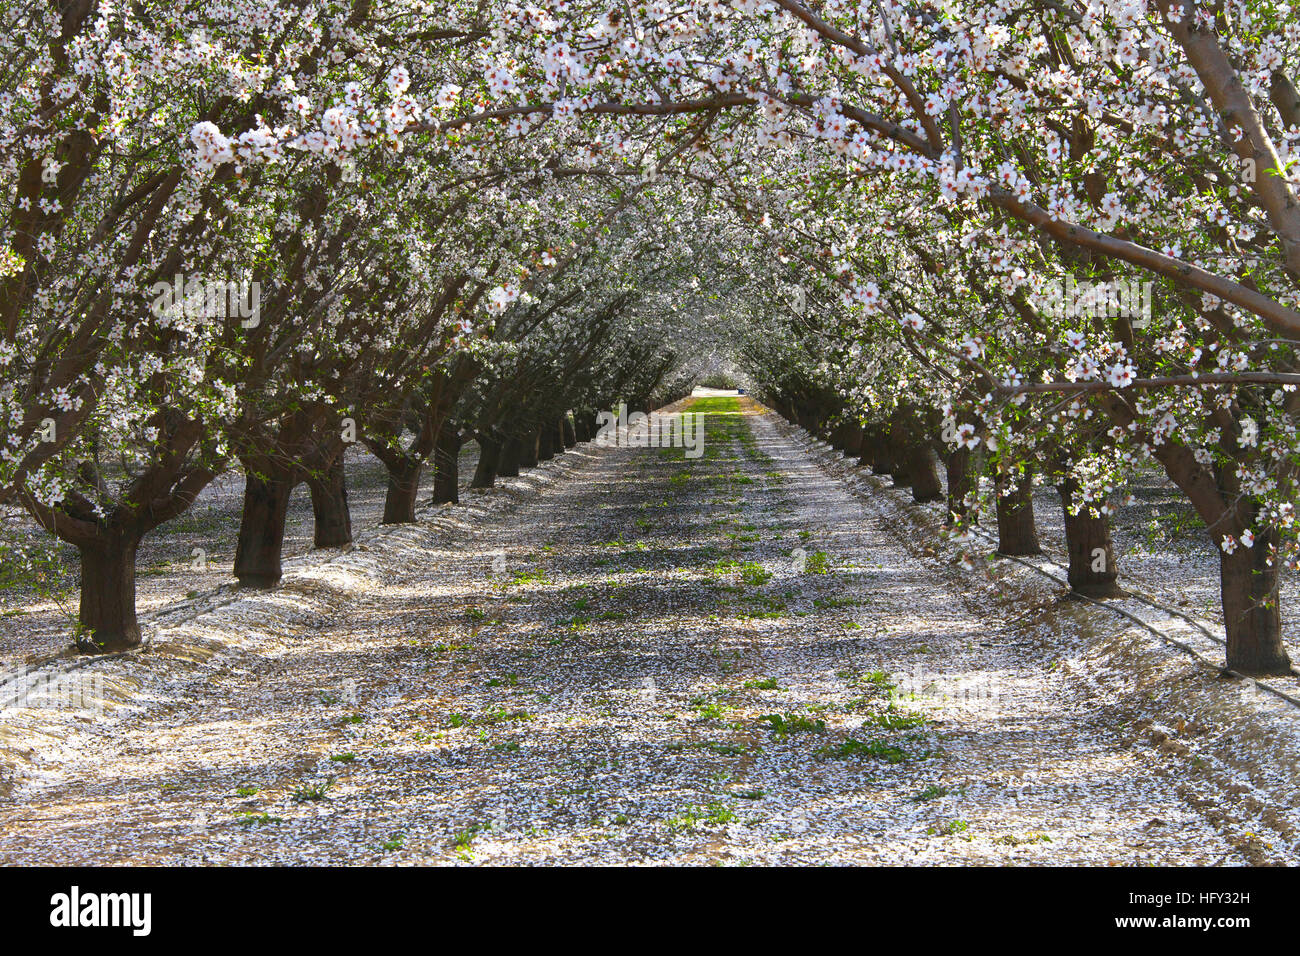 Rows Of Almond Trees Blooming White And Pink Flowers With Petals